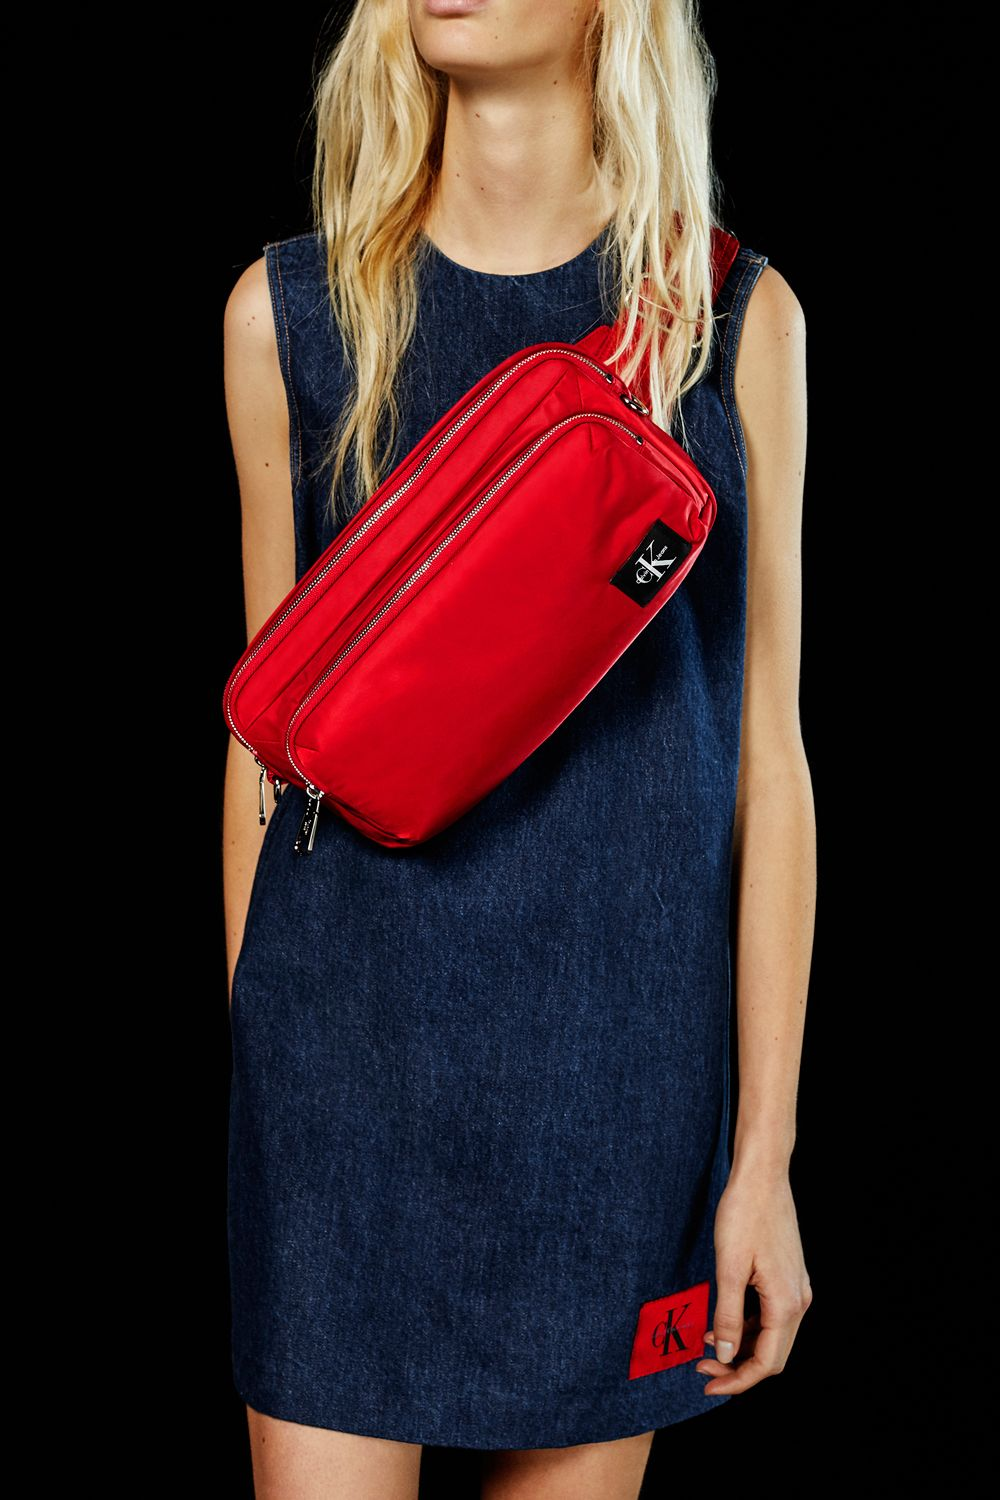 e09713fcc5b41 On the go  the crossover sling bag from Spring 2018 CALVIN KLEIN JEANS  features a heritage logo patch and lightweight sling for quick access to  your ...